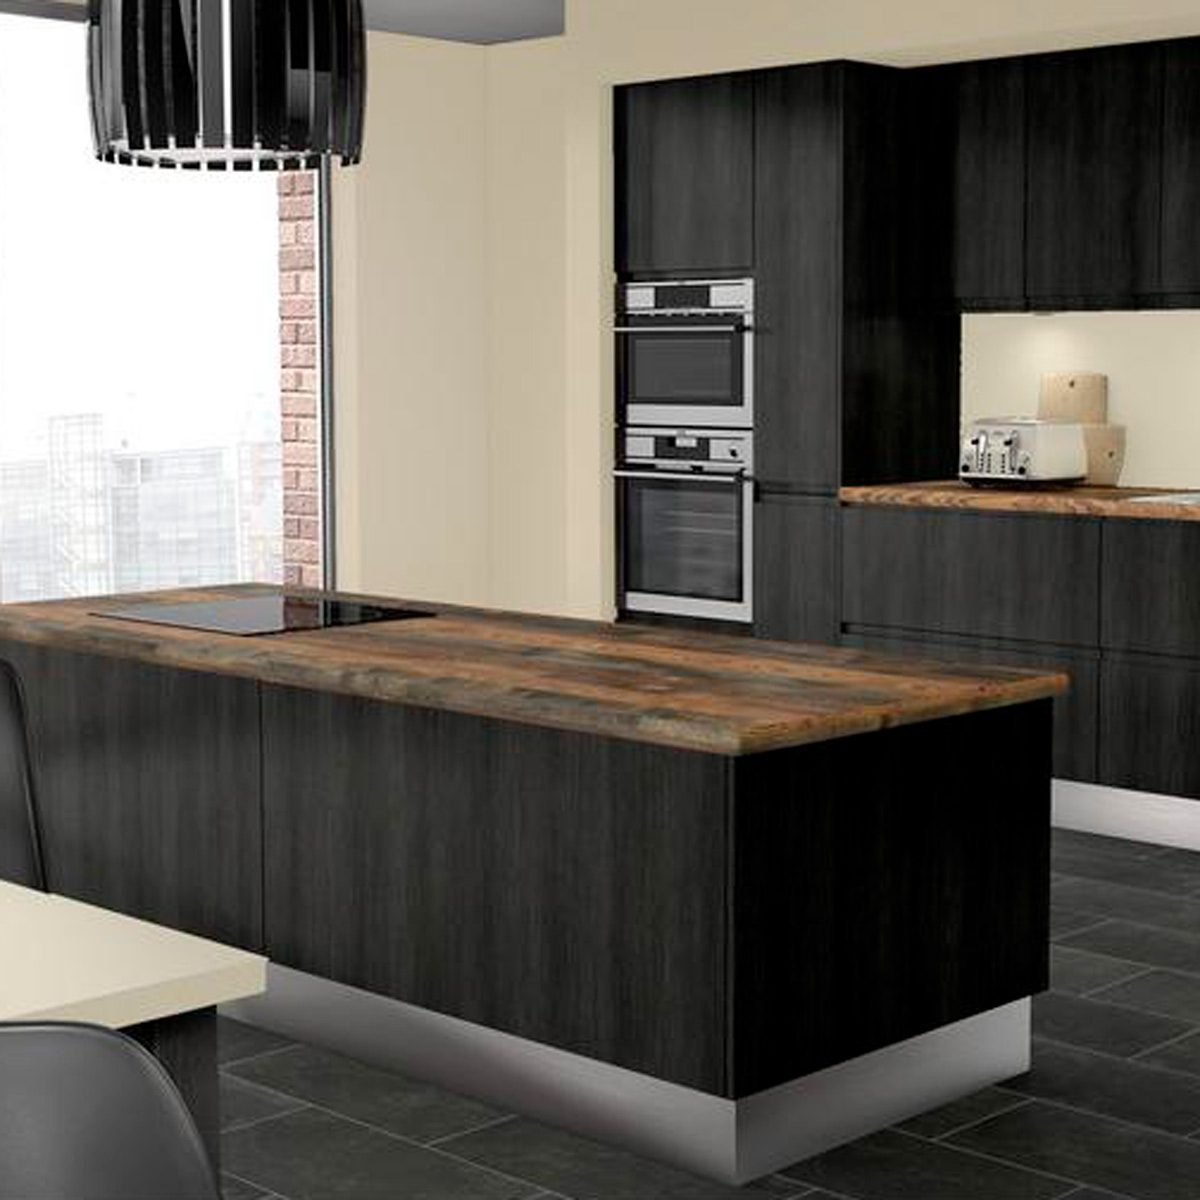 Laminate Countertop Ideas That Don T